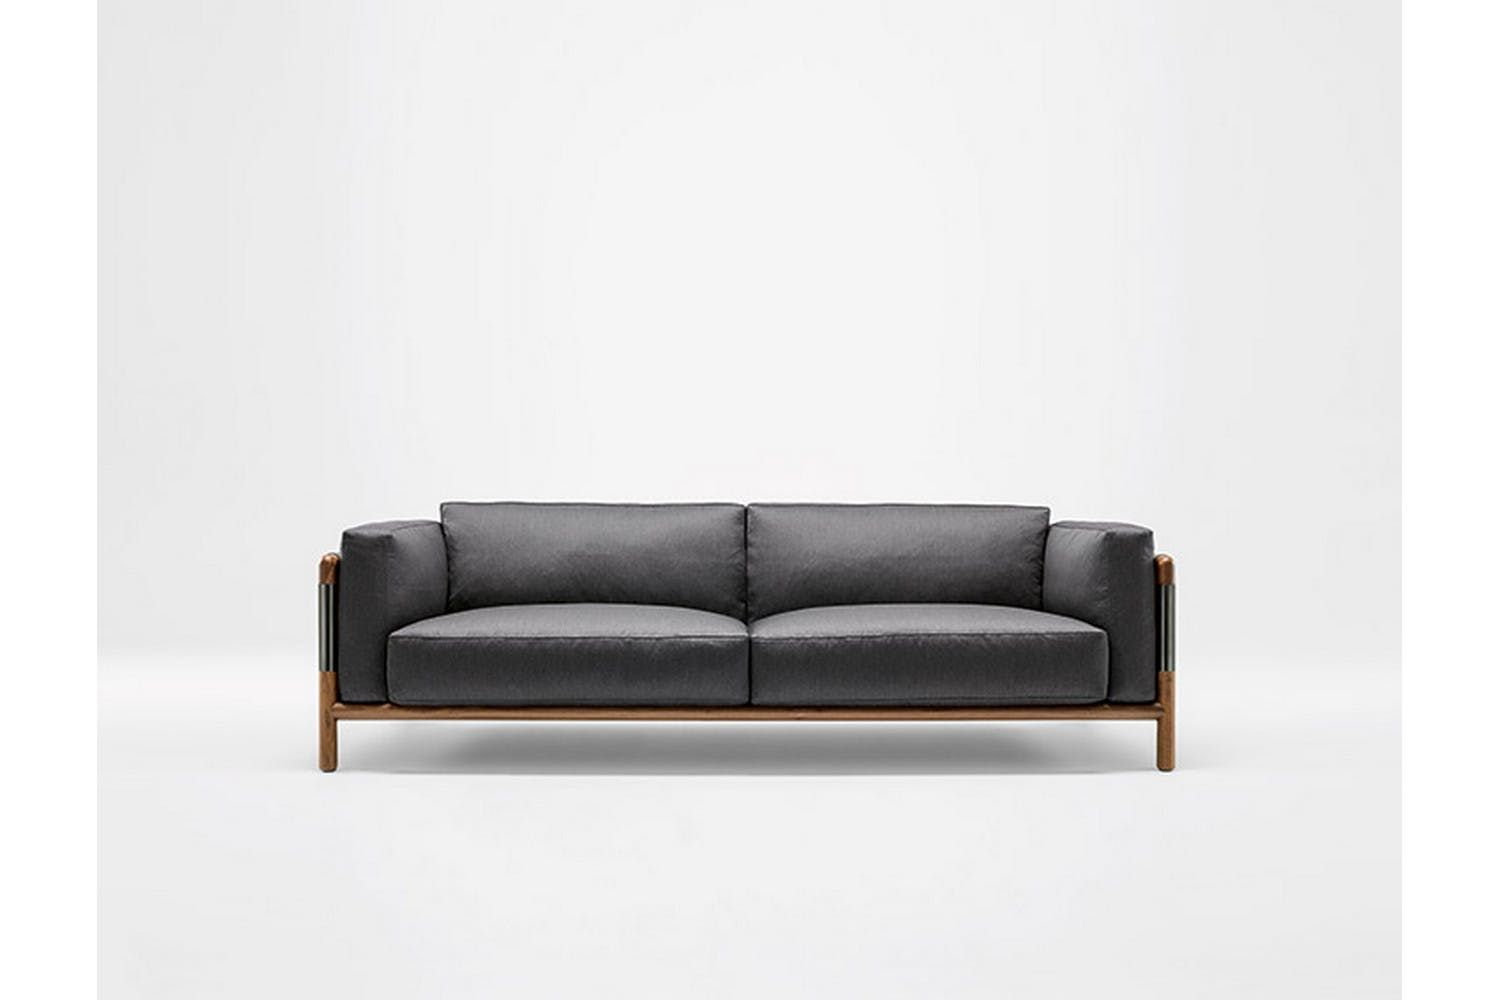 Urban Sofa by Carlo Colombo for Sofa, Eclectic